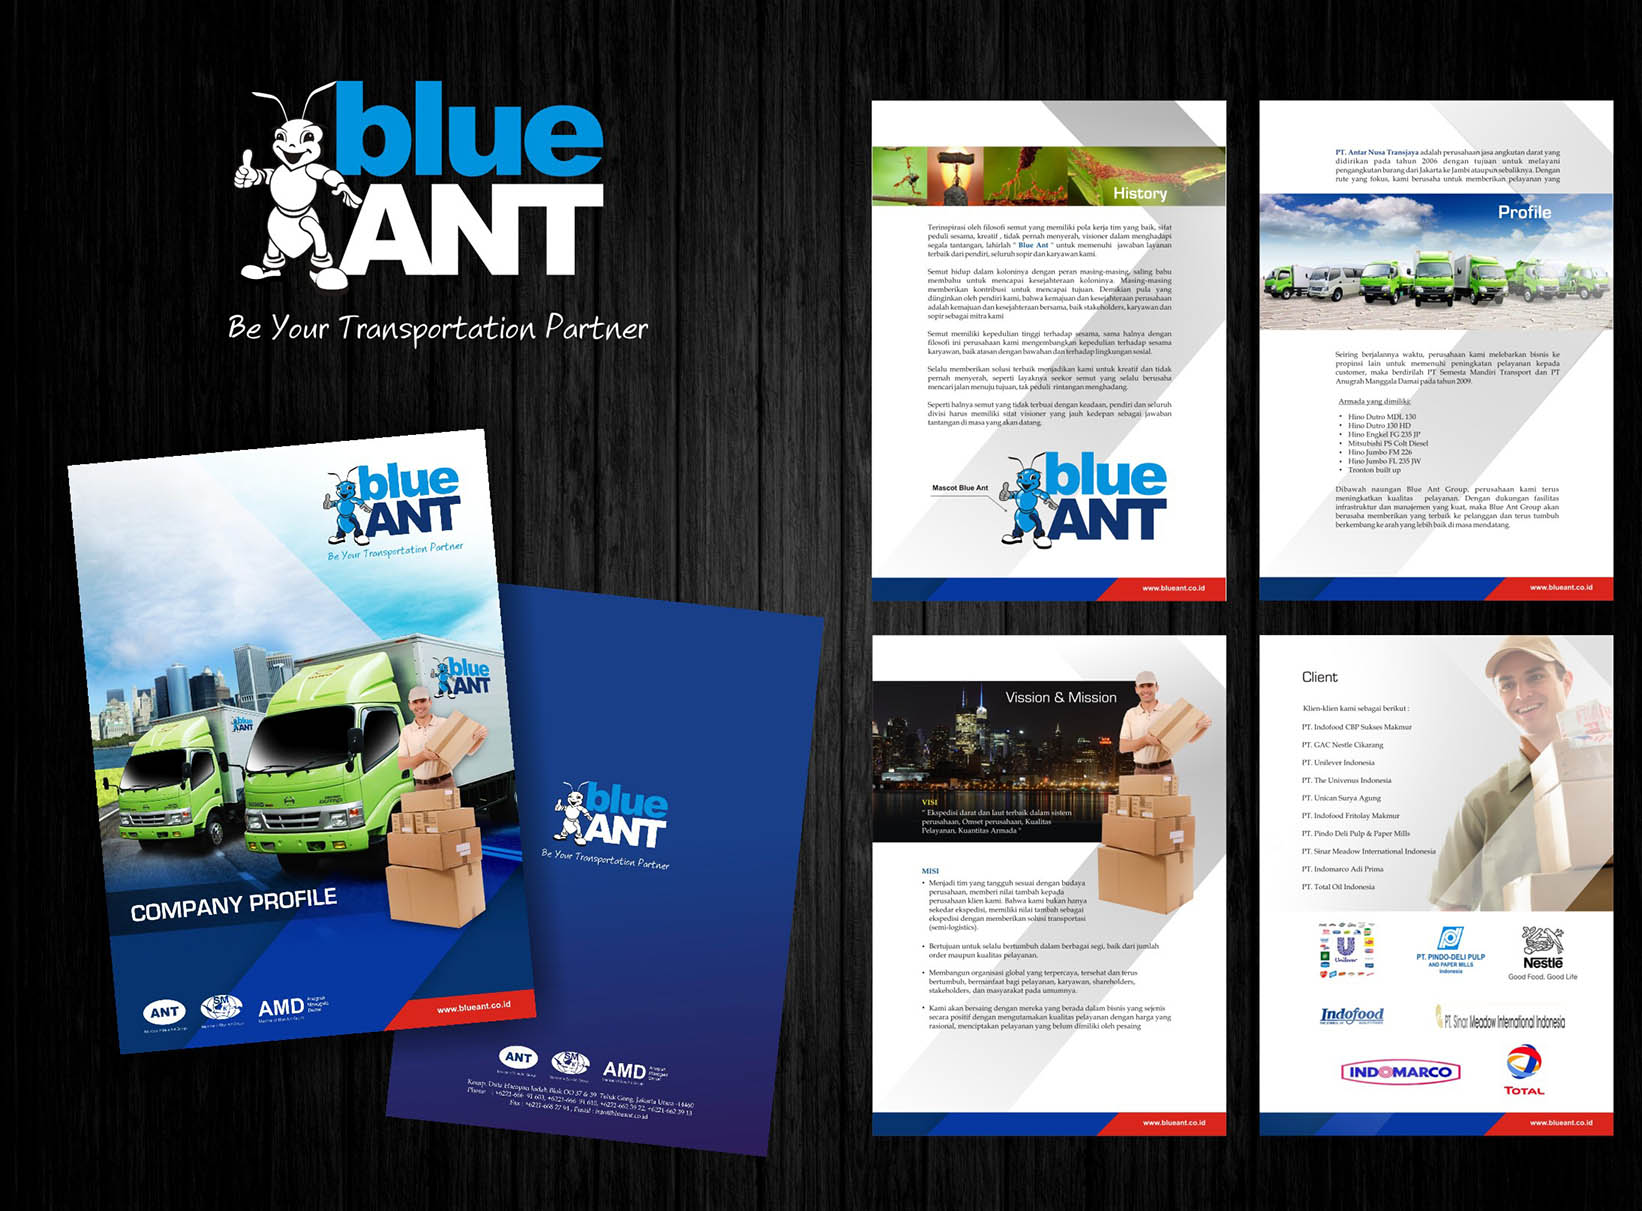 Gallery Company Profile Design For Blue Ant Logistic